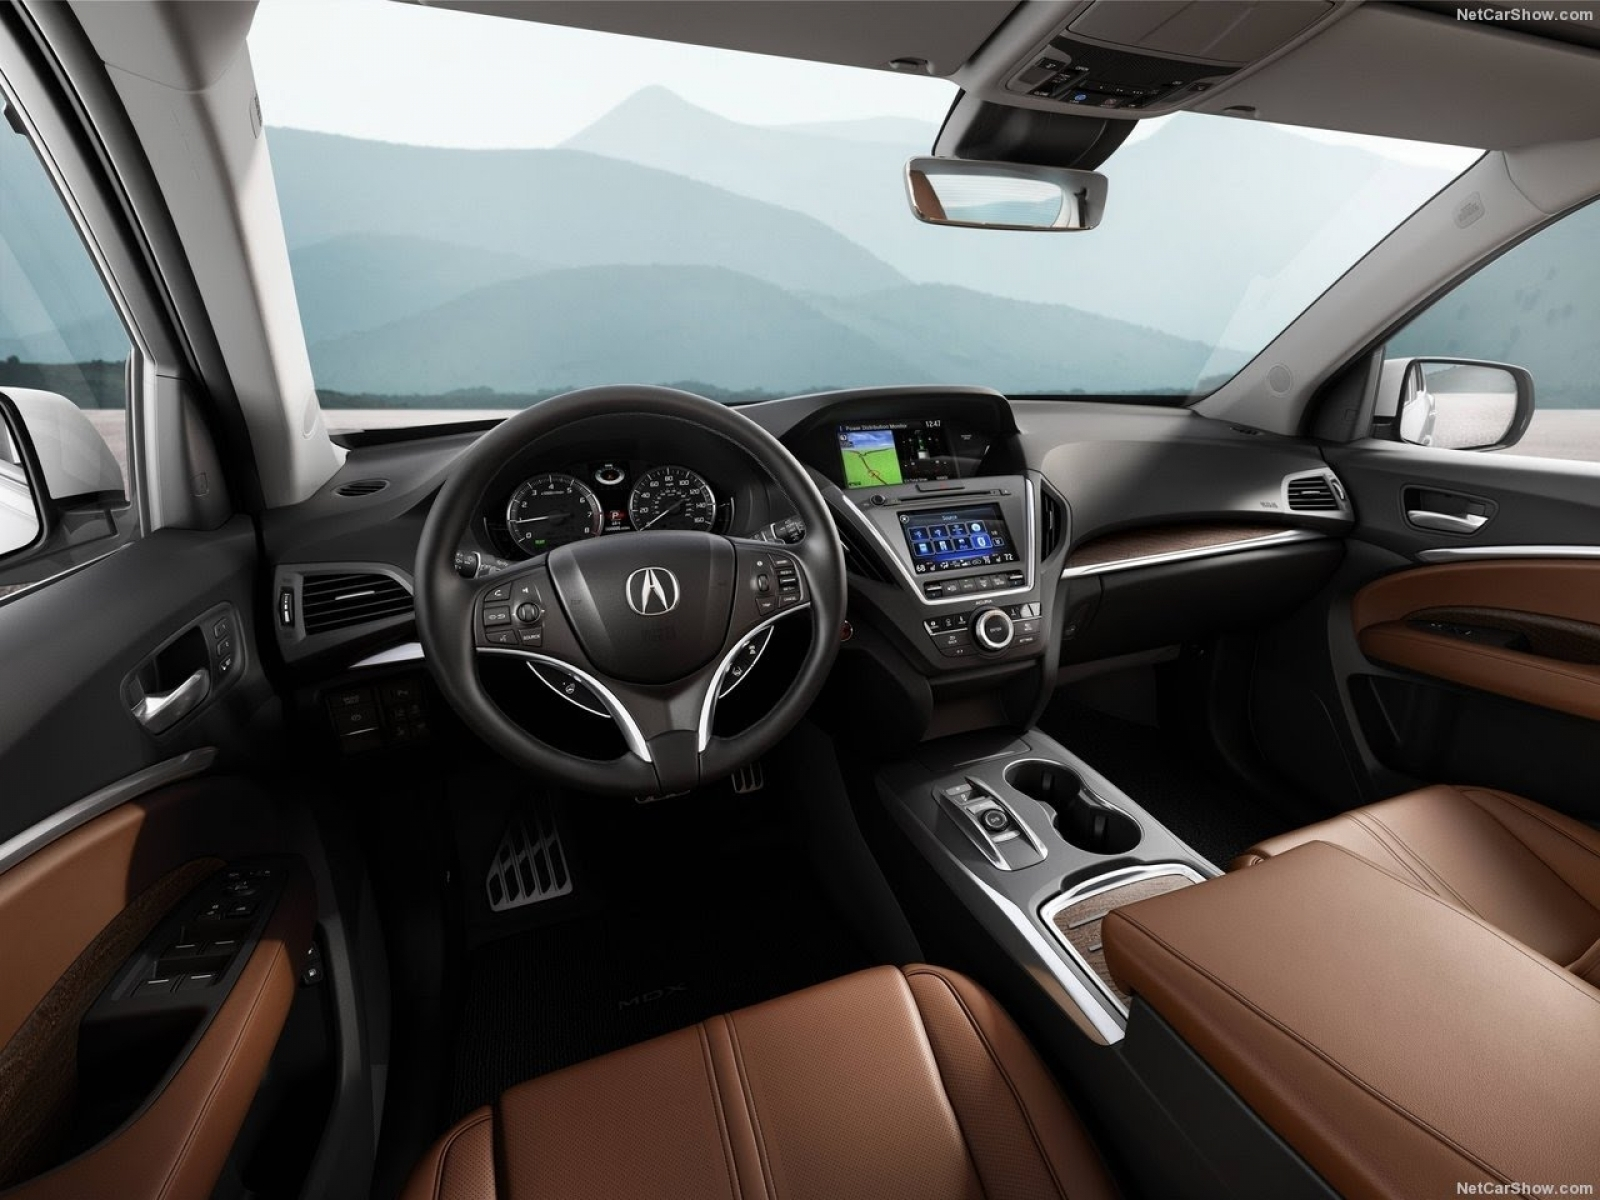 2017 acura mdx interior wallpaper hd resolution navigation pics acura rdx invoice